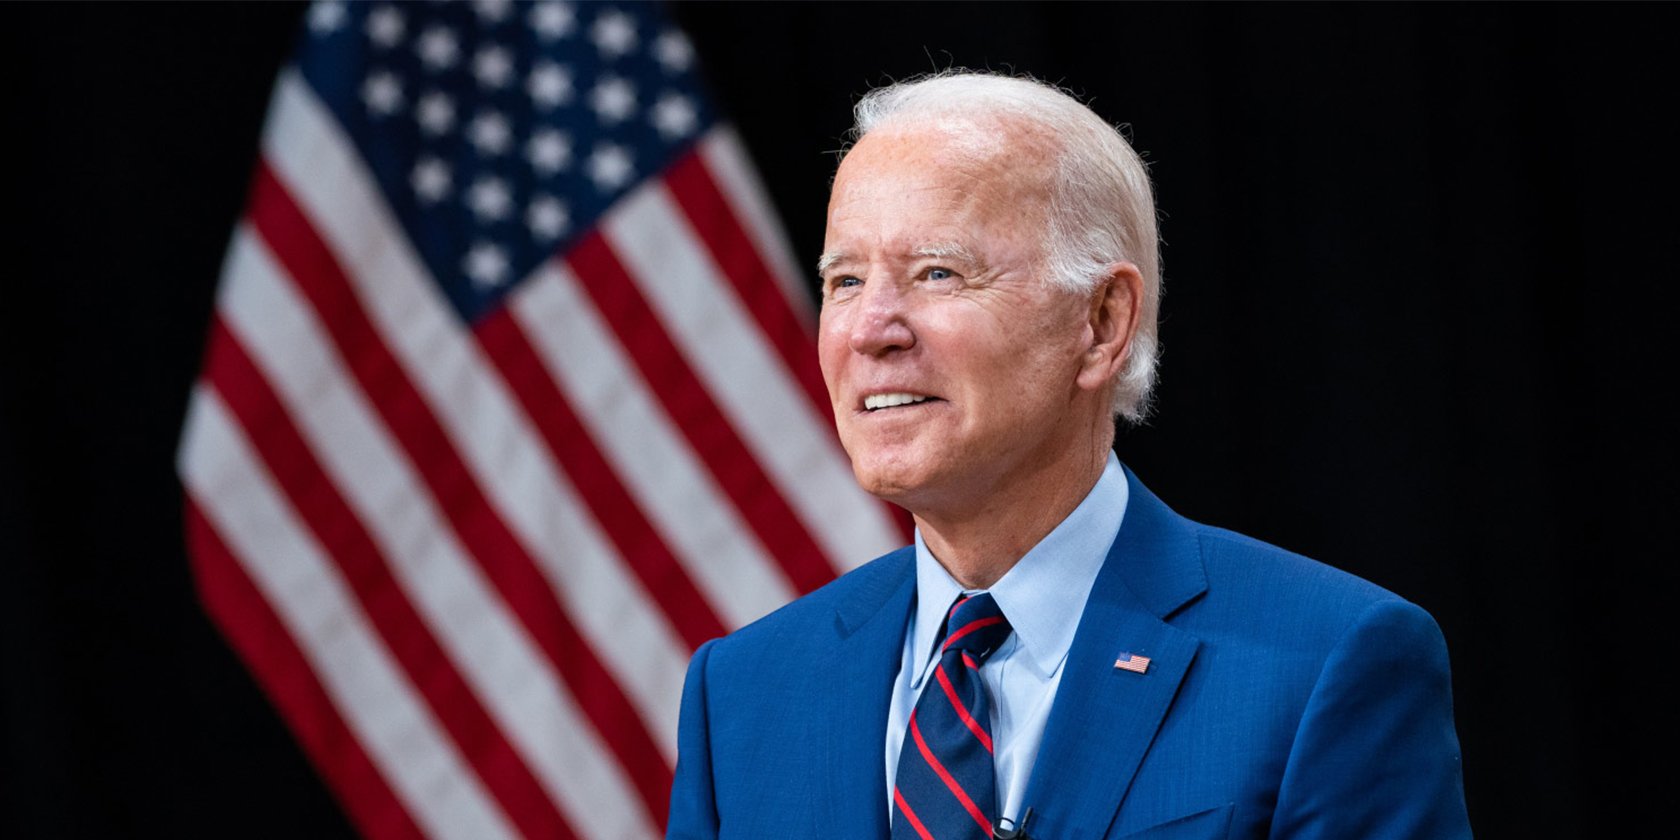 Report: Facebook, Twitter, and Snapchat Are Part of President Biden's Vaccination Campaign